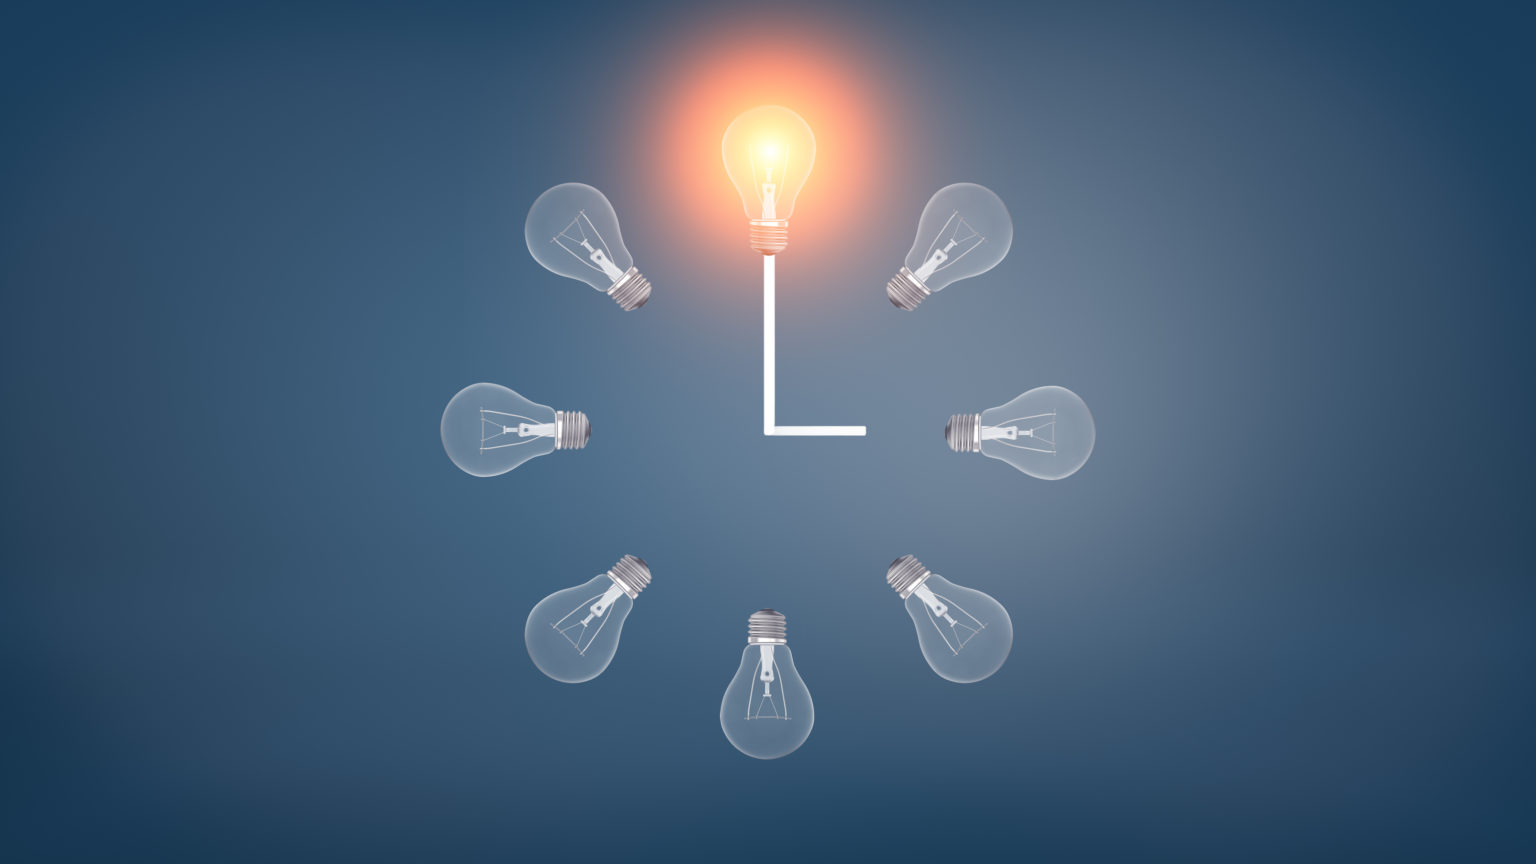 3d rendering of a several incandescent light bulbs arranged in the clock shape with one glowing bulb on the top.